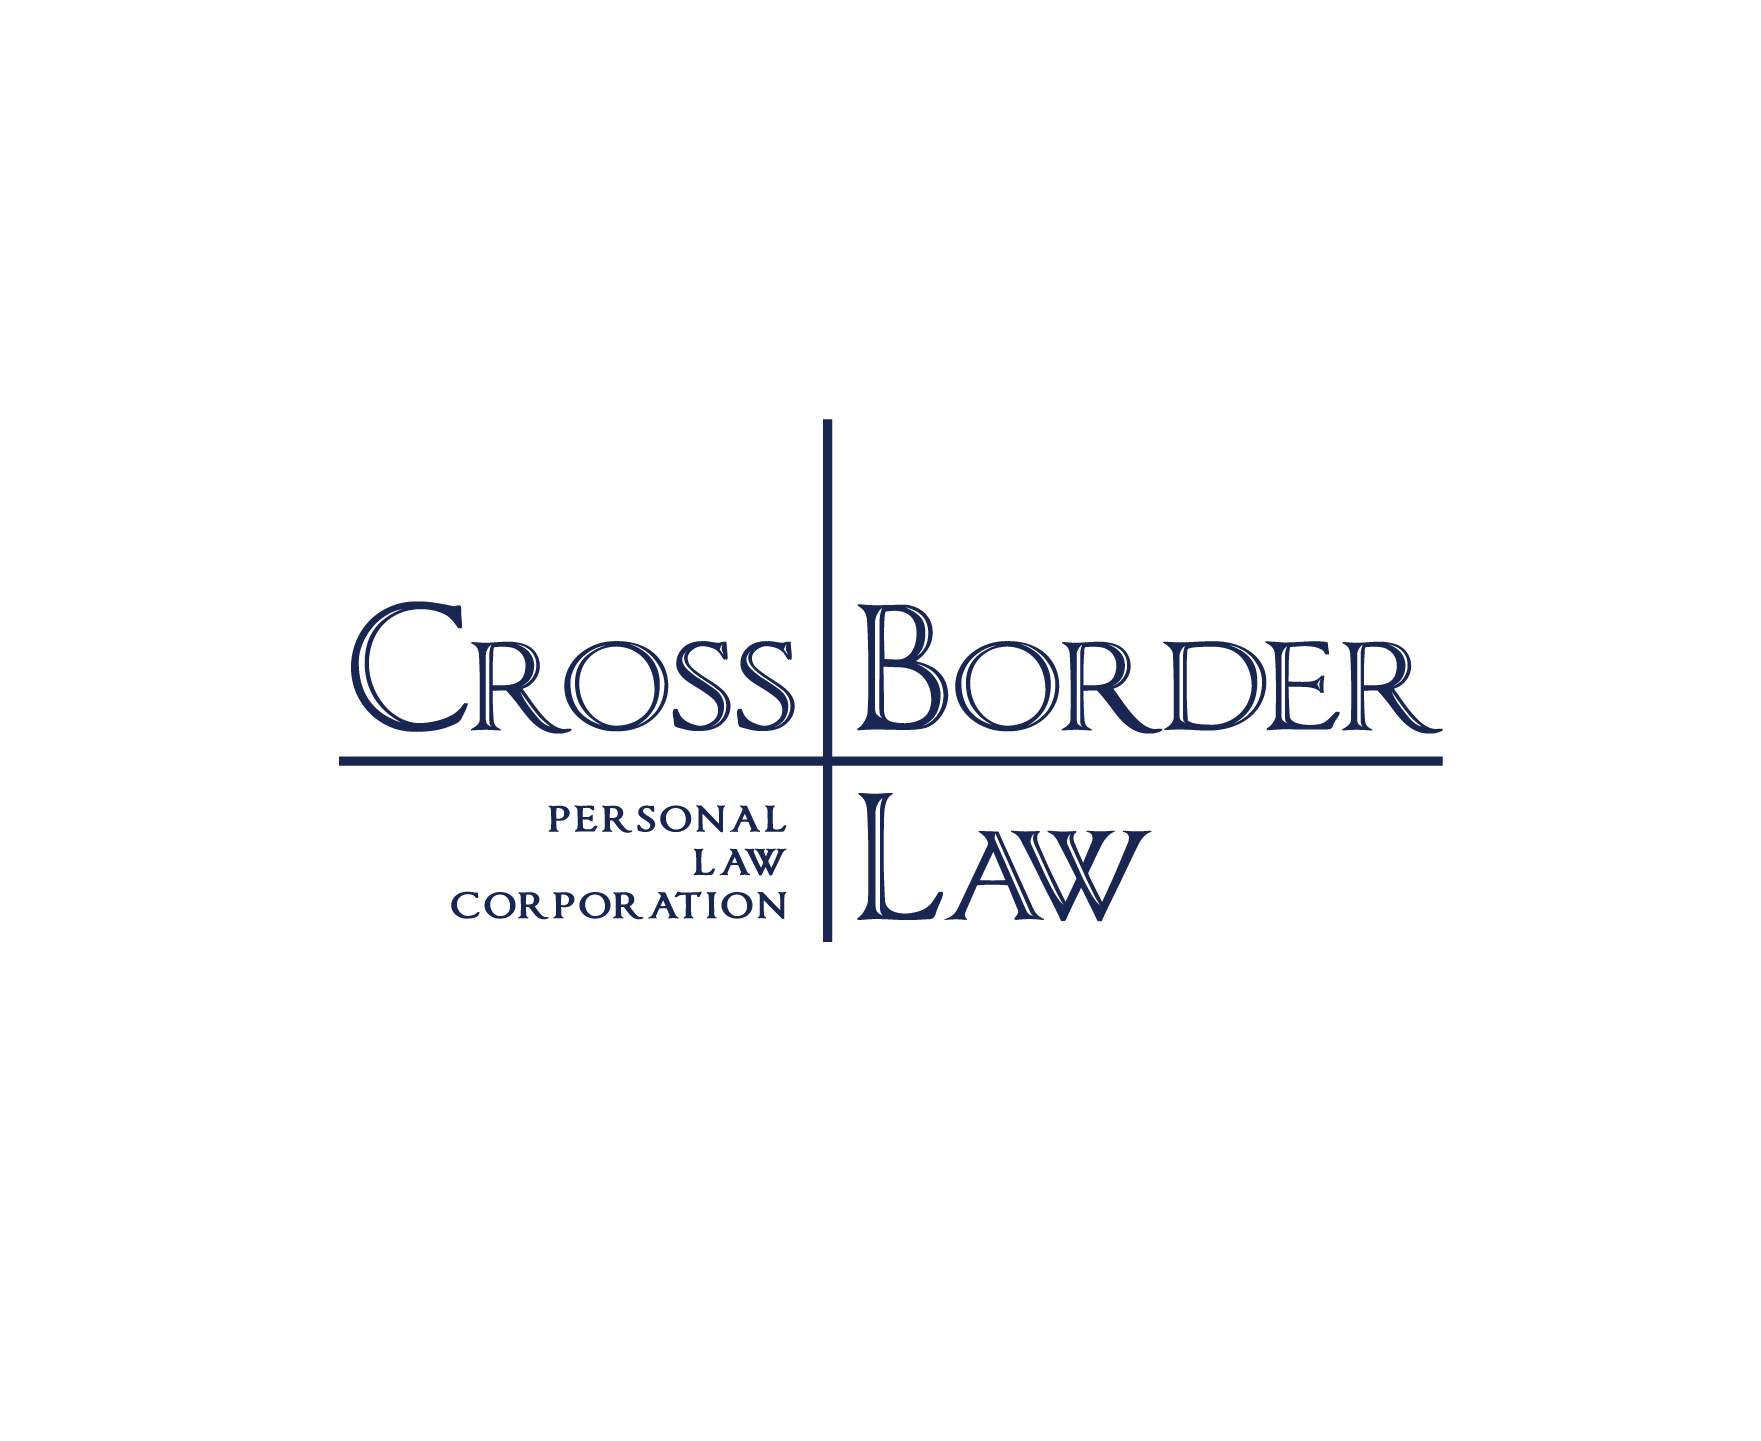 Create a new identity for a boutique law firm